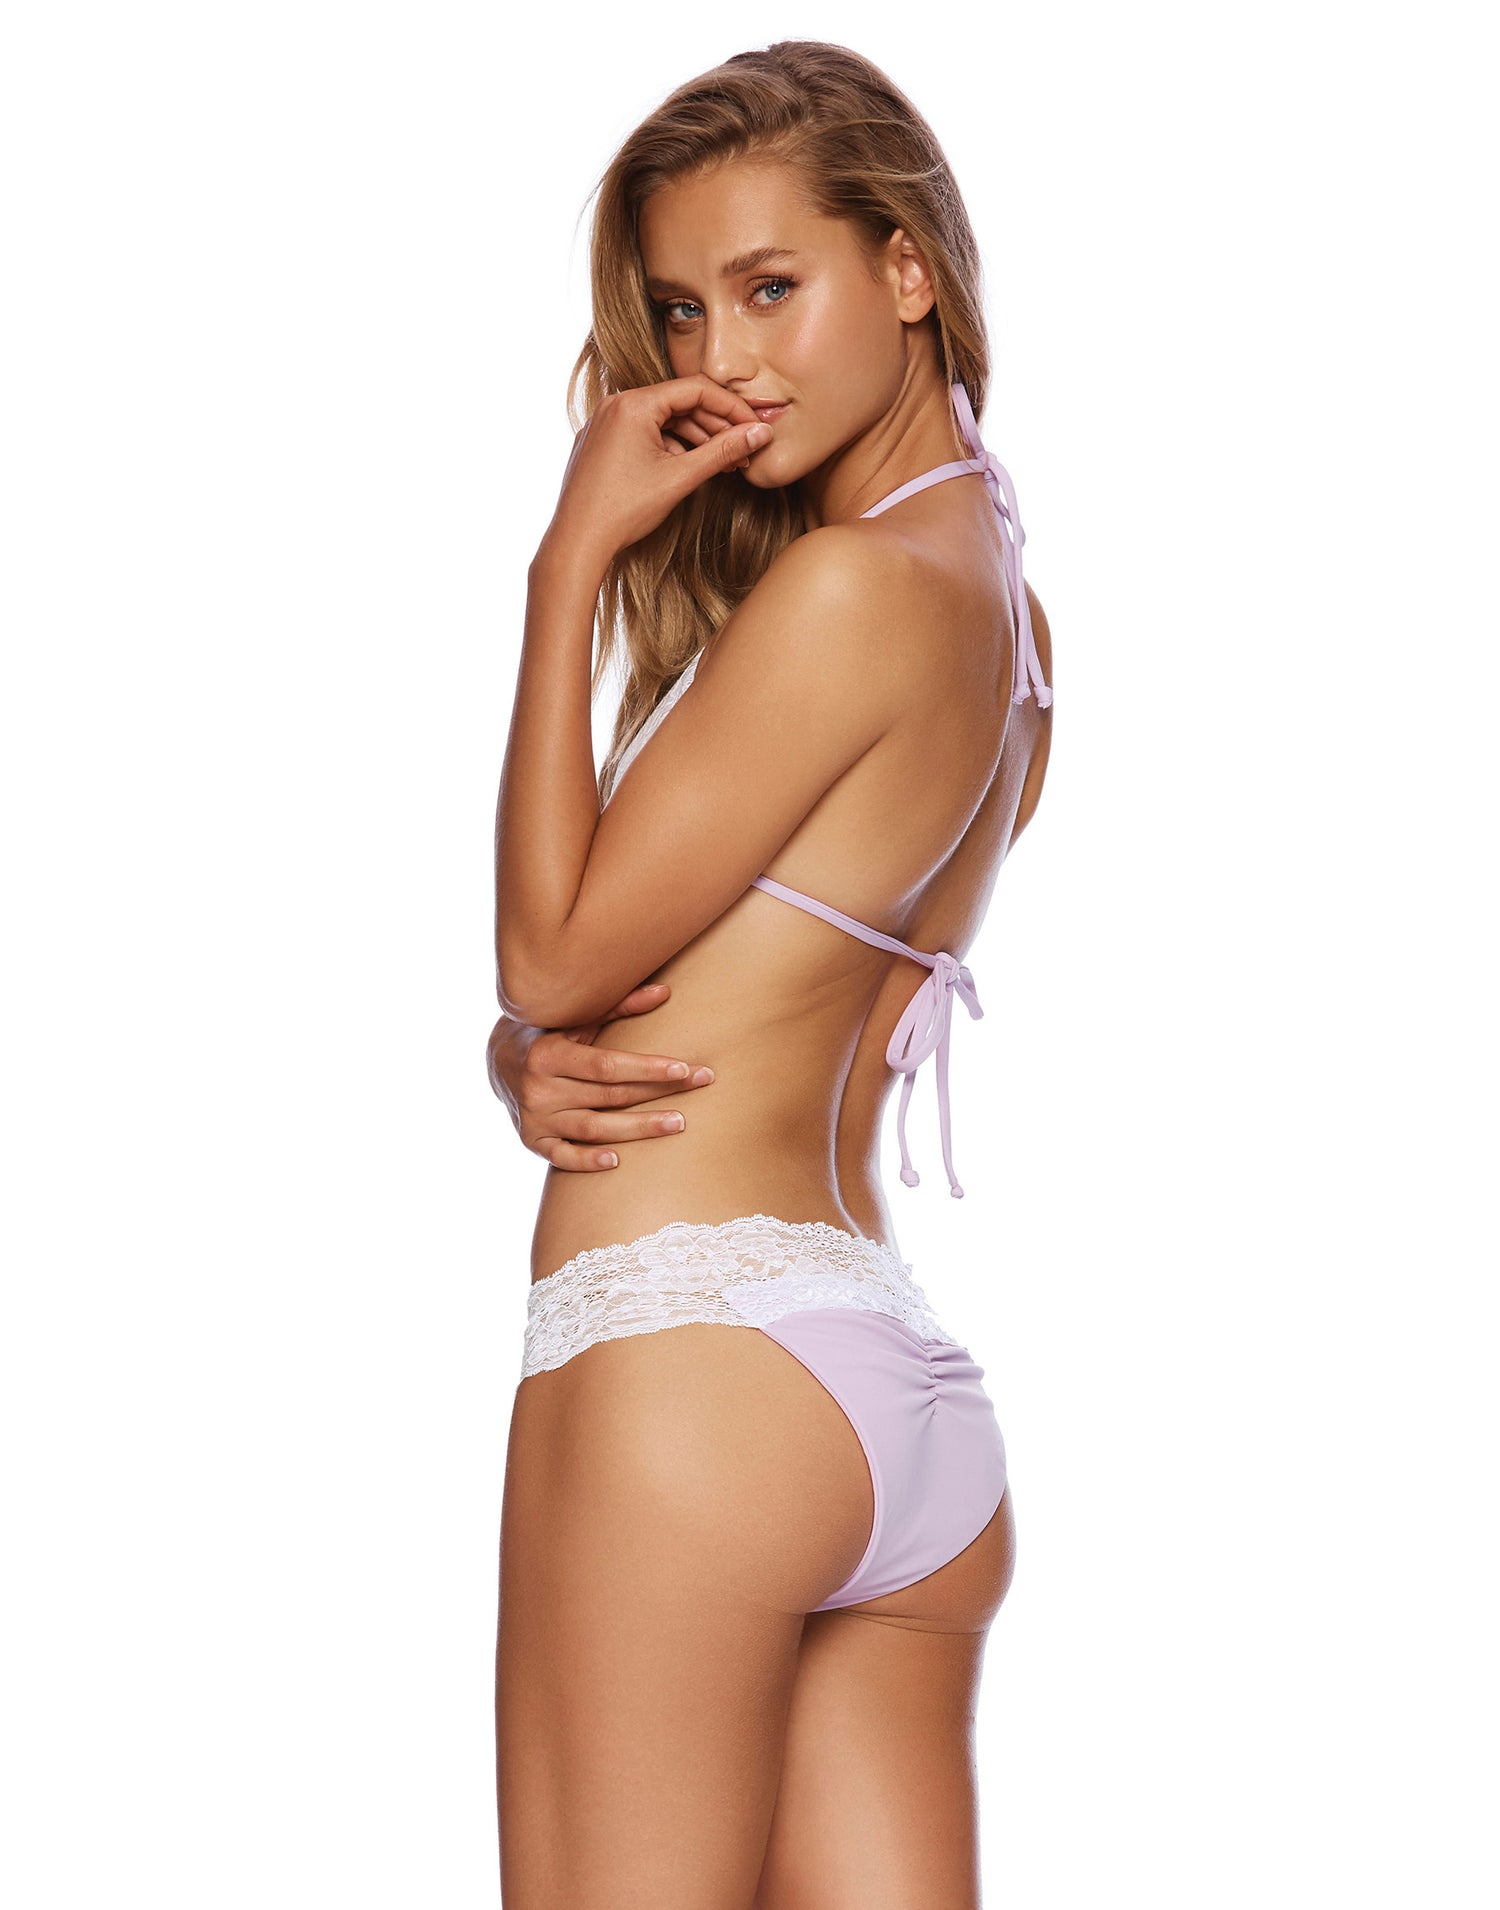 Lady Lace Skimpy Bikini Bottom in Lavender - side view